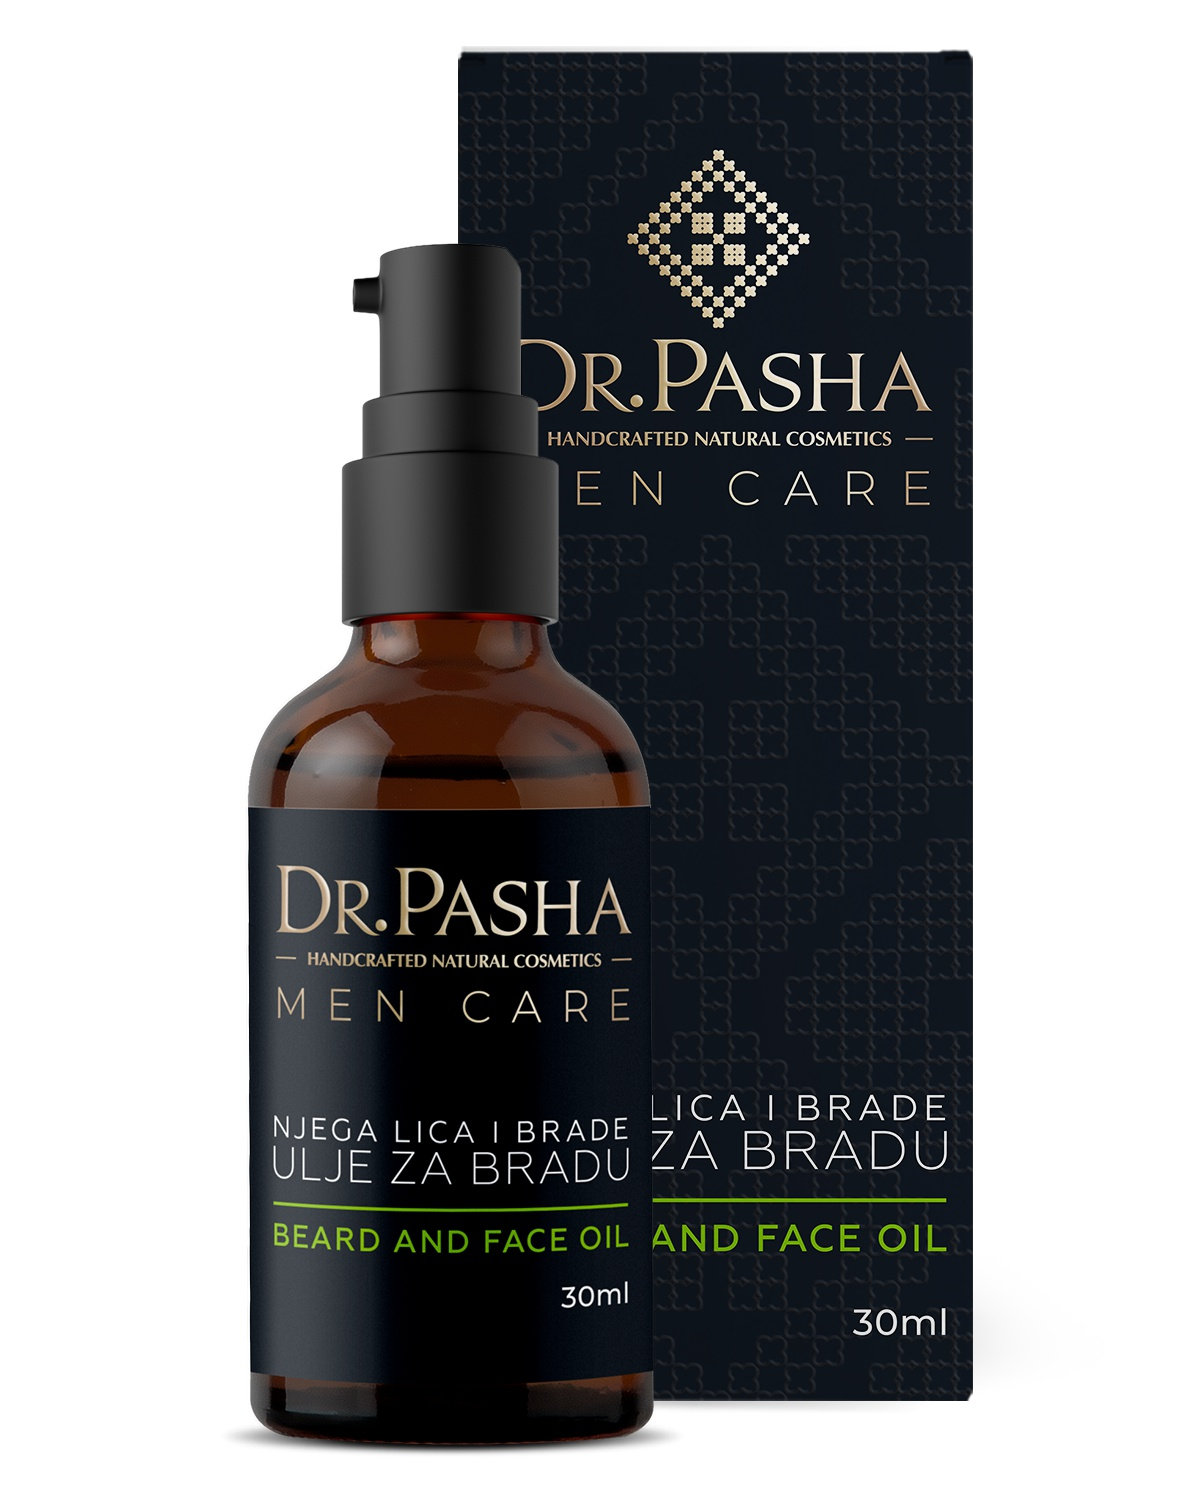 Dr. Pasha Beard And Face Oil